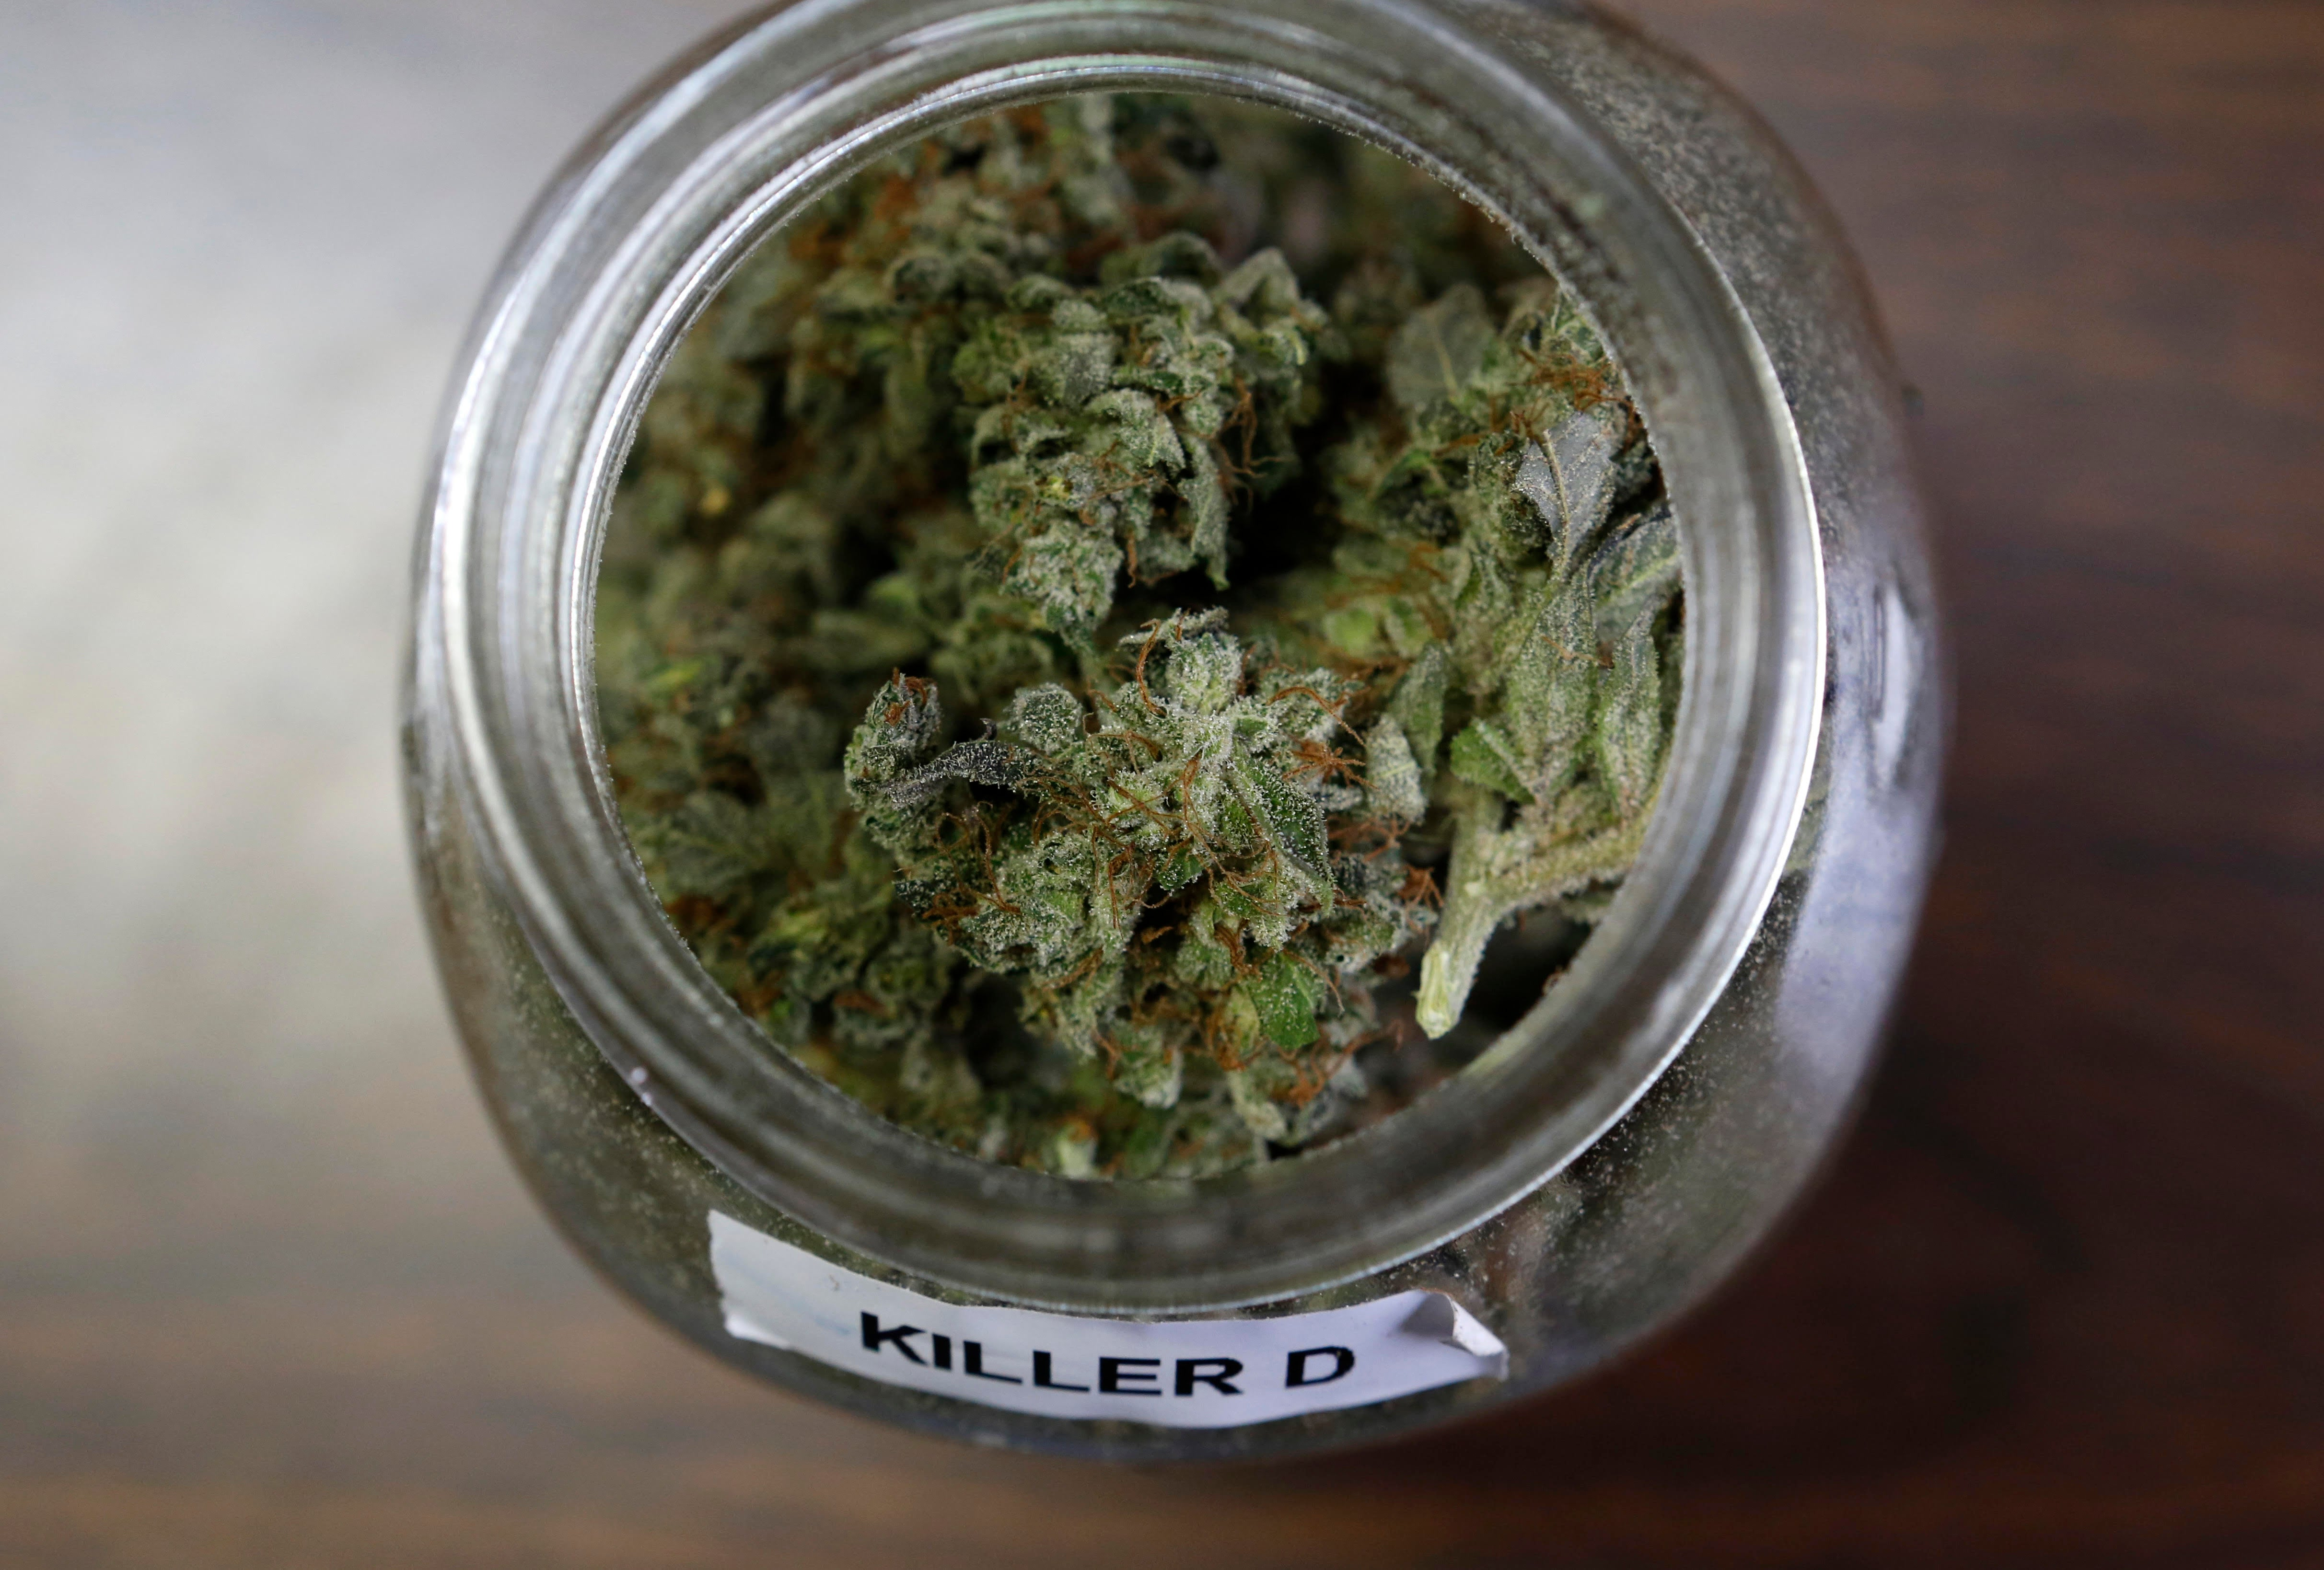 """In this Friday, April 22, 2016 photo, a jar containing a strain of marijuana nicknamed """"Killer D"""" is seen at a medical marijuana facility in Unity, Maine. A growing number of health experts and law enforcement officials are making the case that marijuana could help reduce the numbers of overdoses and redirect money into fighting heroin and other opiates. (AP Photo/Robert F. Bukaty)"""